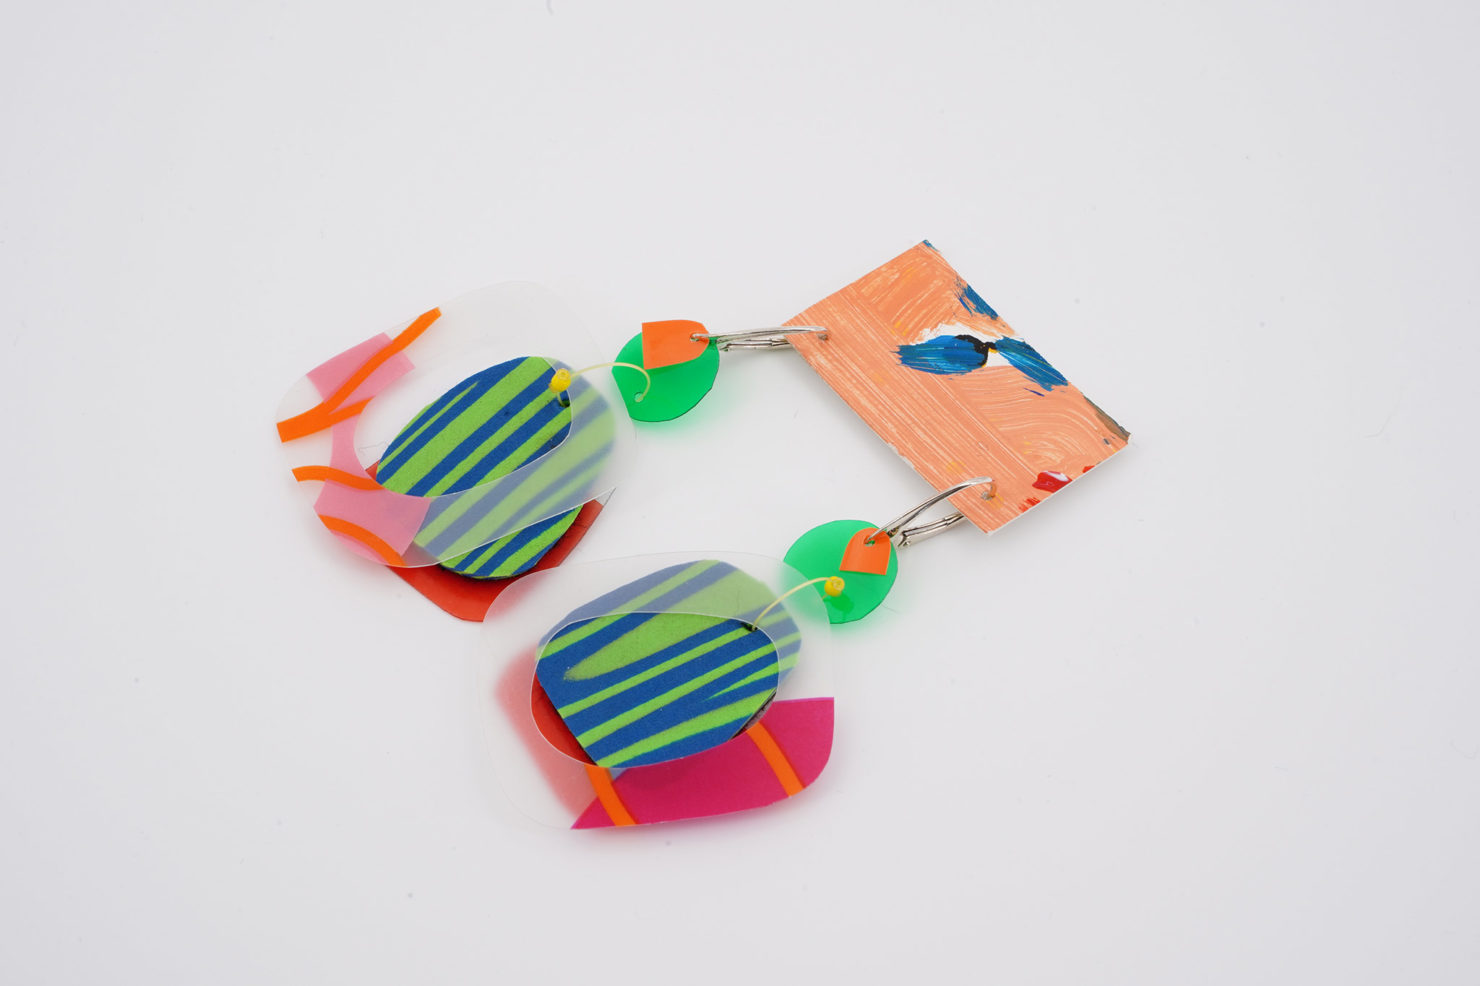 HANDMADE EARRINGS WITH CUTTED RECYCLED PLASTIC-SAVE THE FOREST